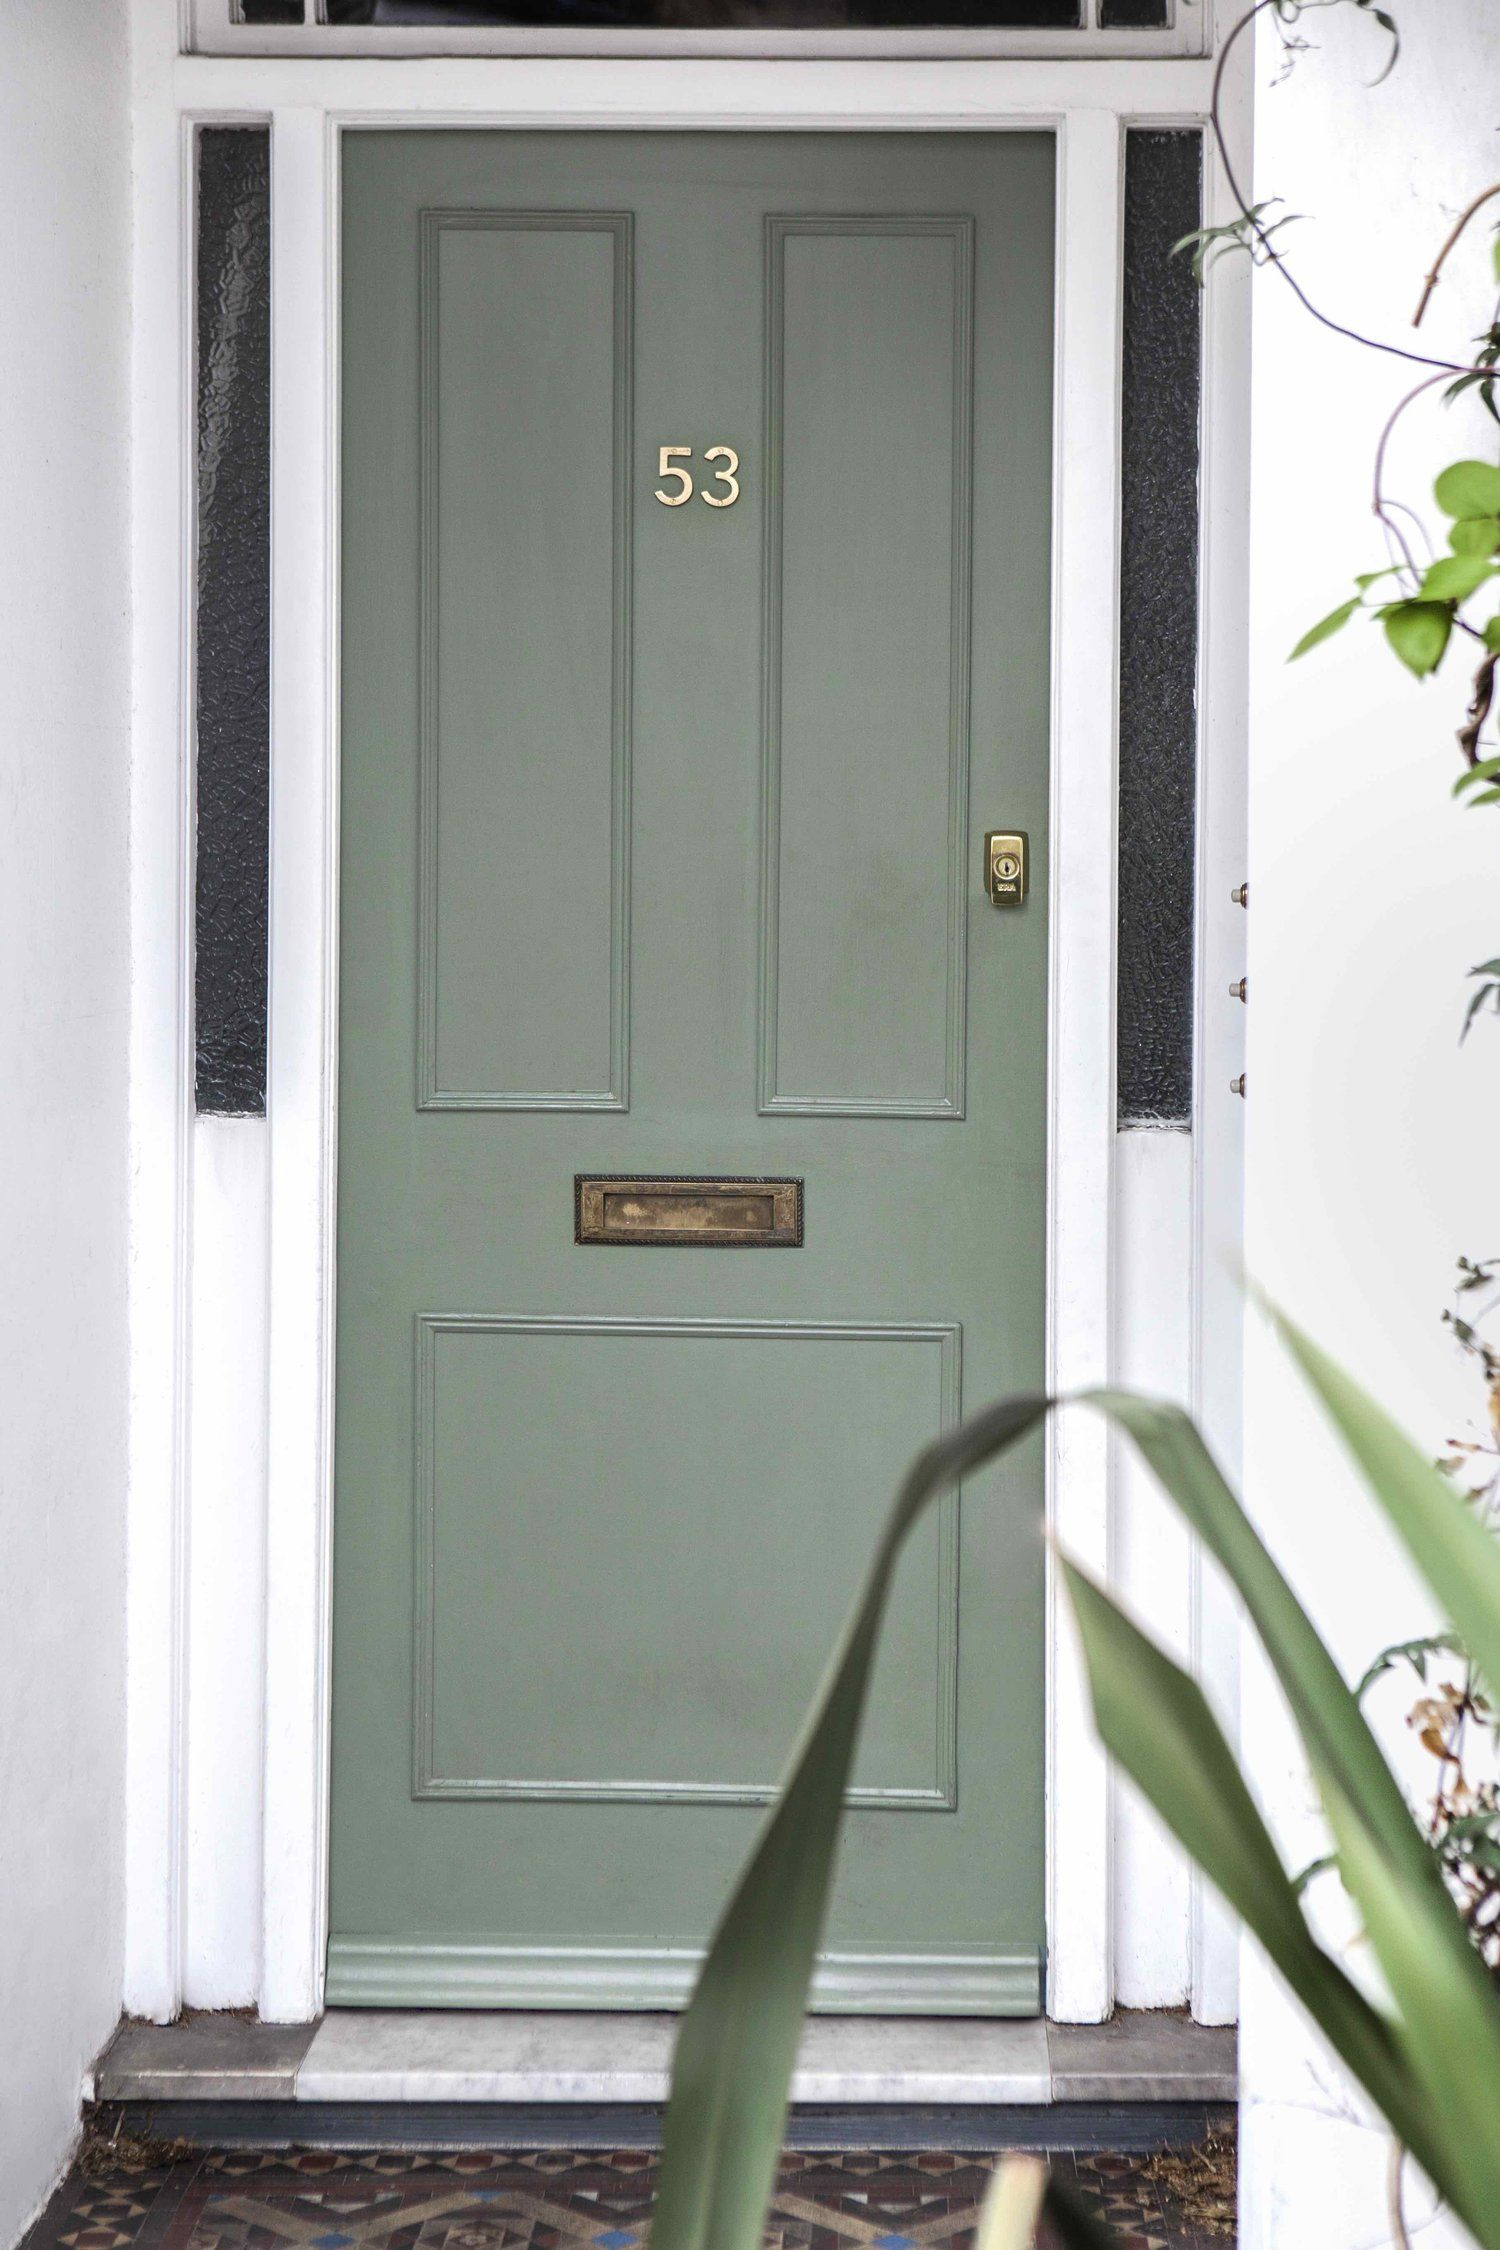 Cast bronze door numbers in situ